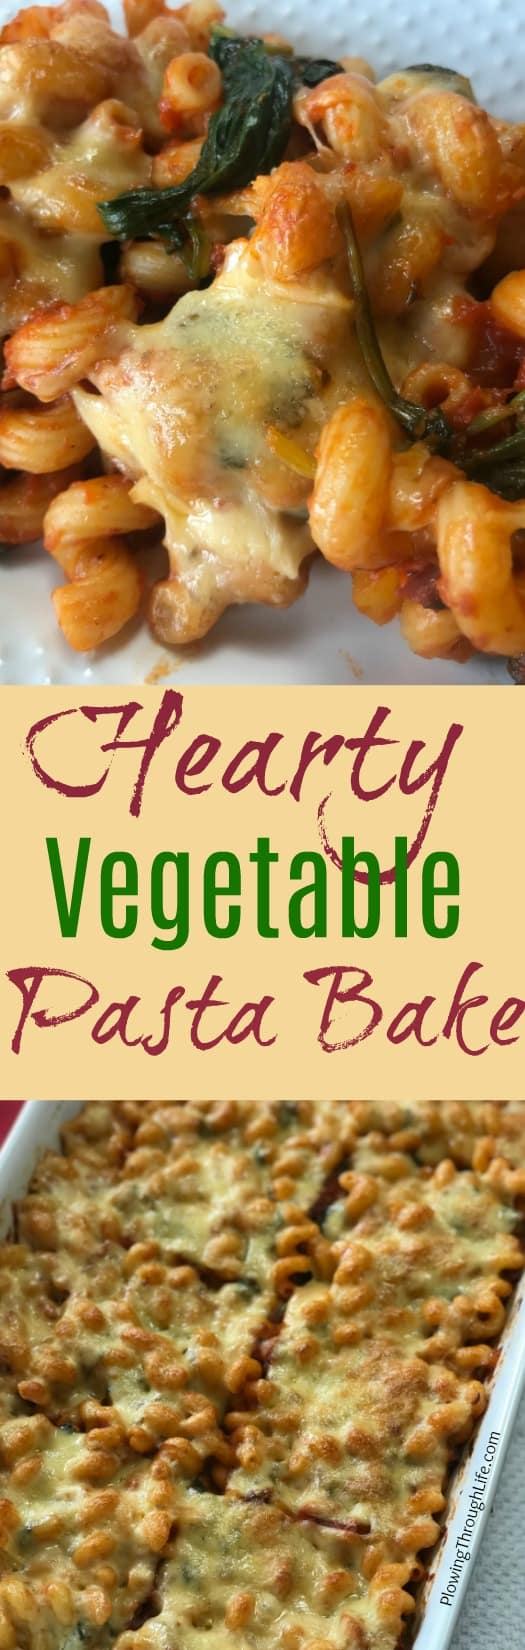 This Hearty Vegetable Pasta Bake recipe is full of flavor from the vegetables, sun dried tomatoes and cheese.